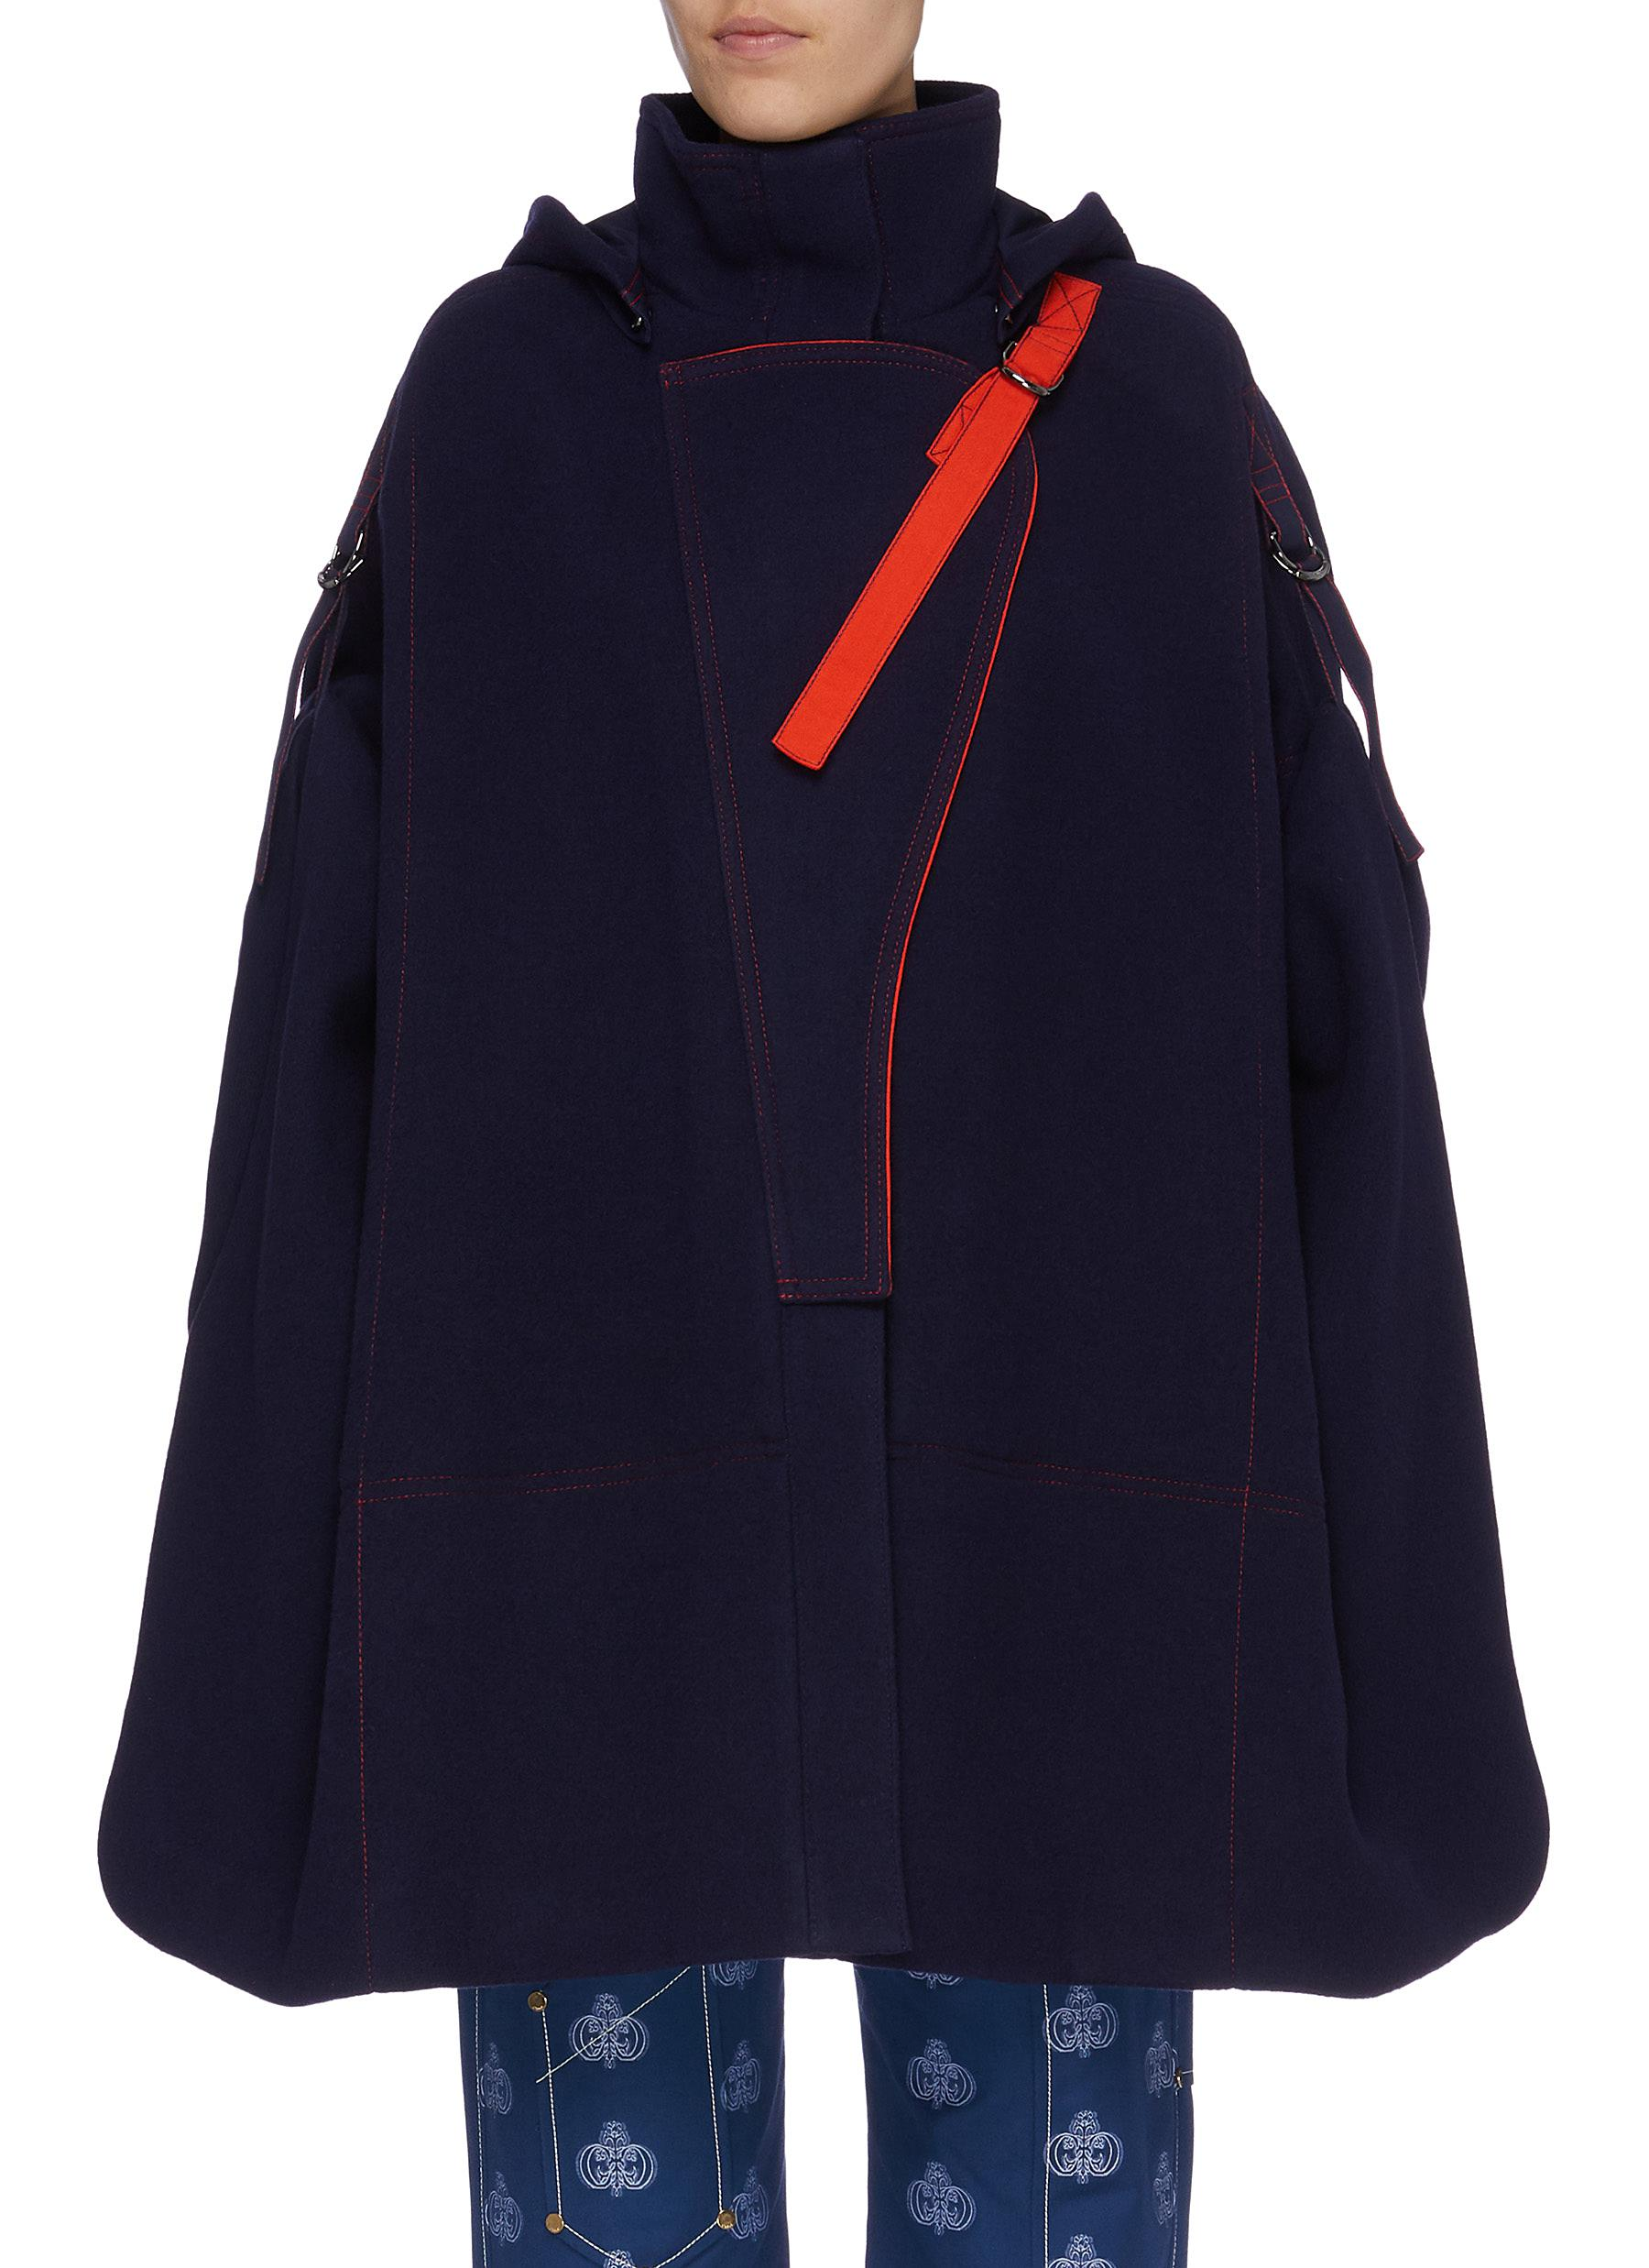 D-ring strap hooded melton oversized high neck military cape by Chloé